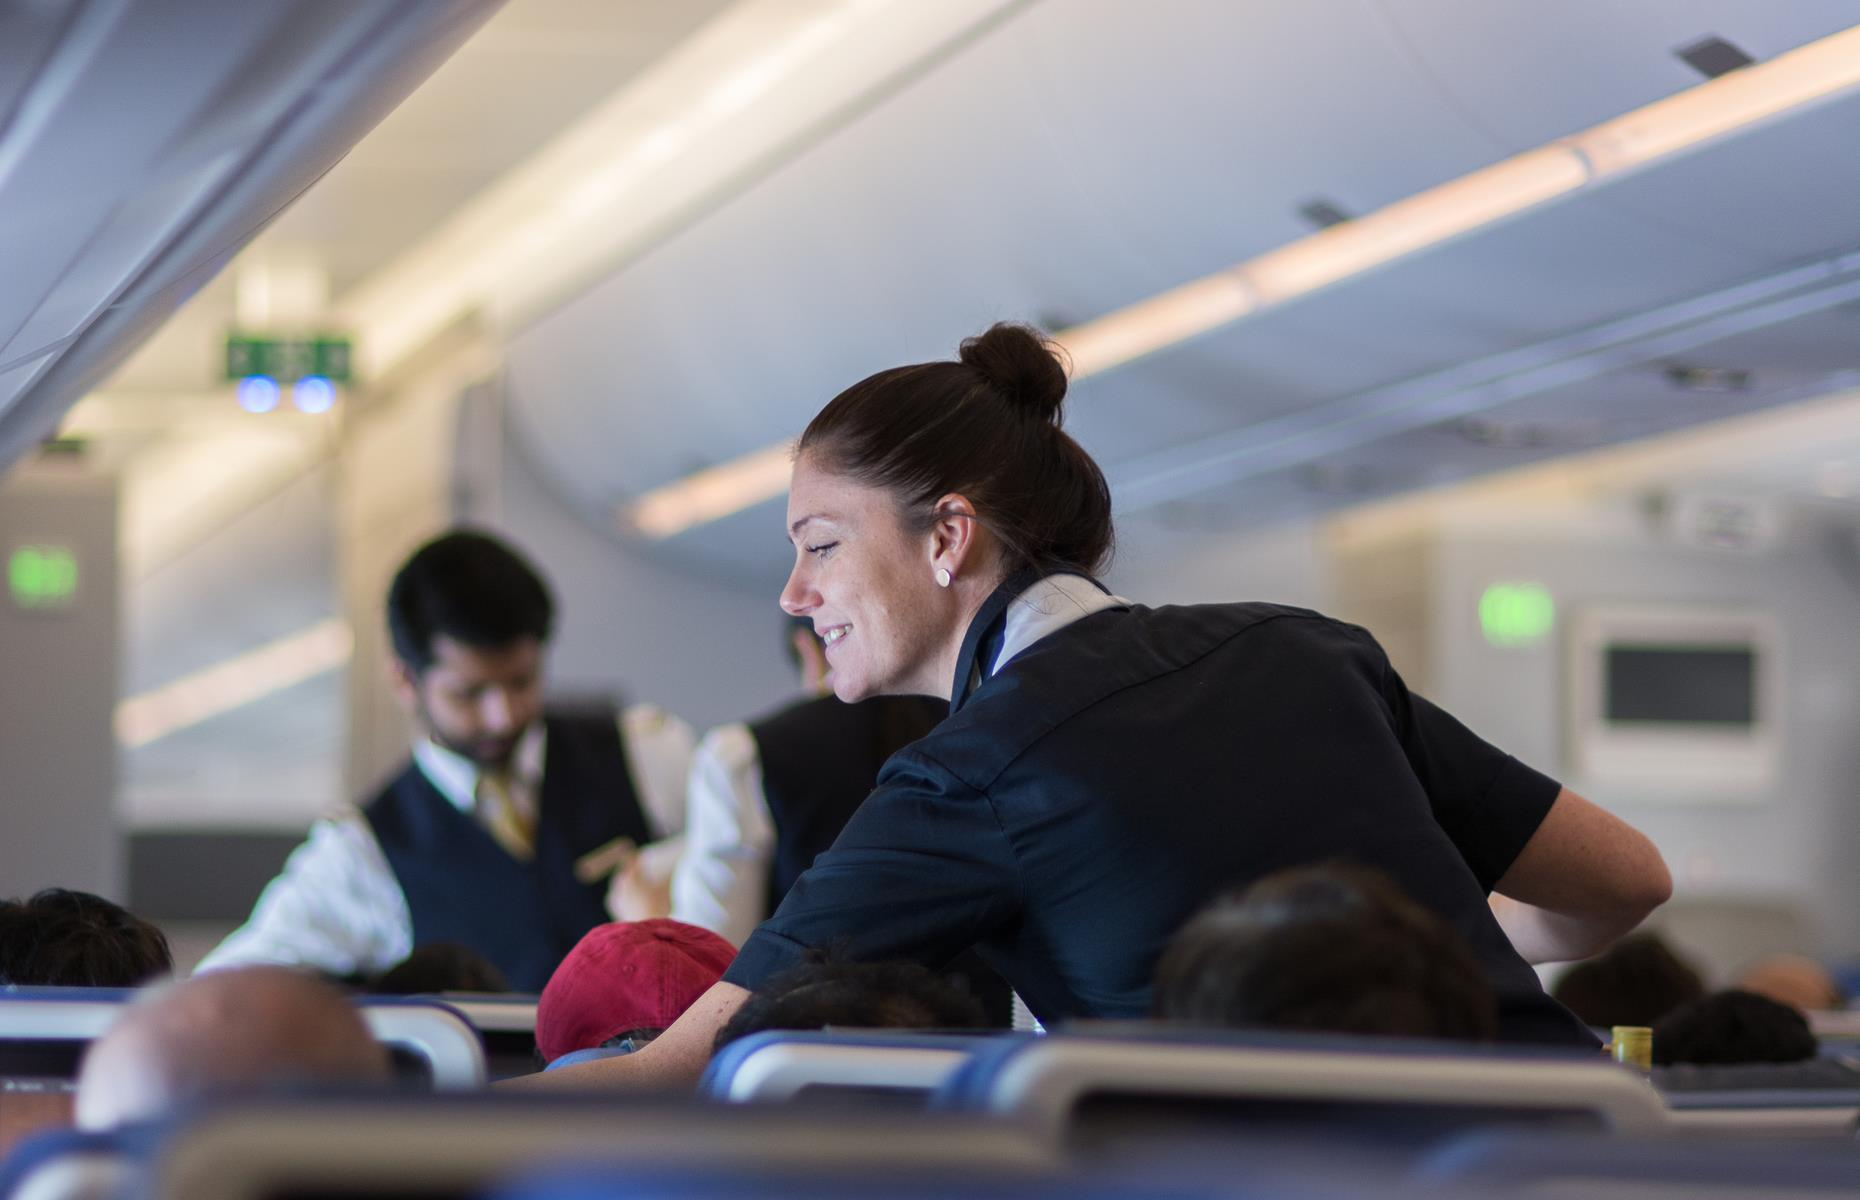 Slide 31 of 35: Despite being regarded as a premium airline, Lufthansa receives its highest ratings for its economy class services on long-haul flights, beating both business class and premium economy in customer feedback. Passengers particularly rate the quality of food onboard and the cleanliness of the cabins.